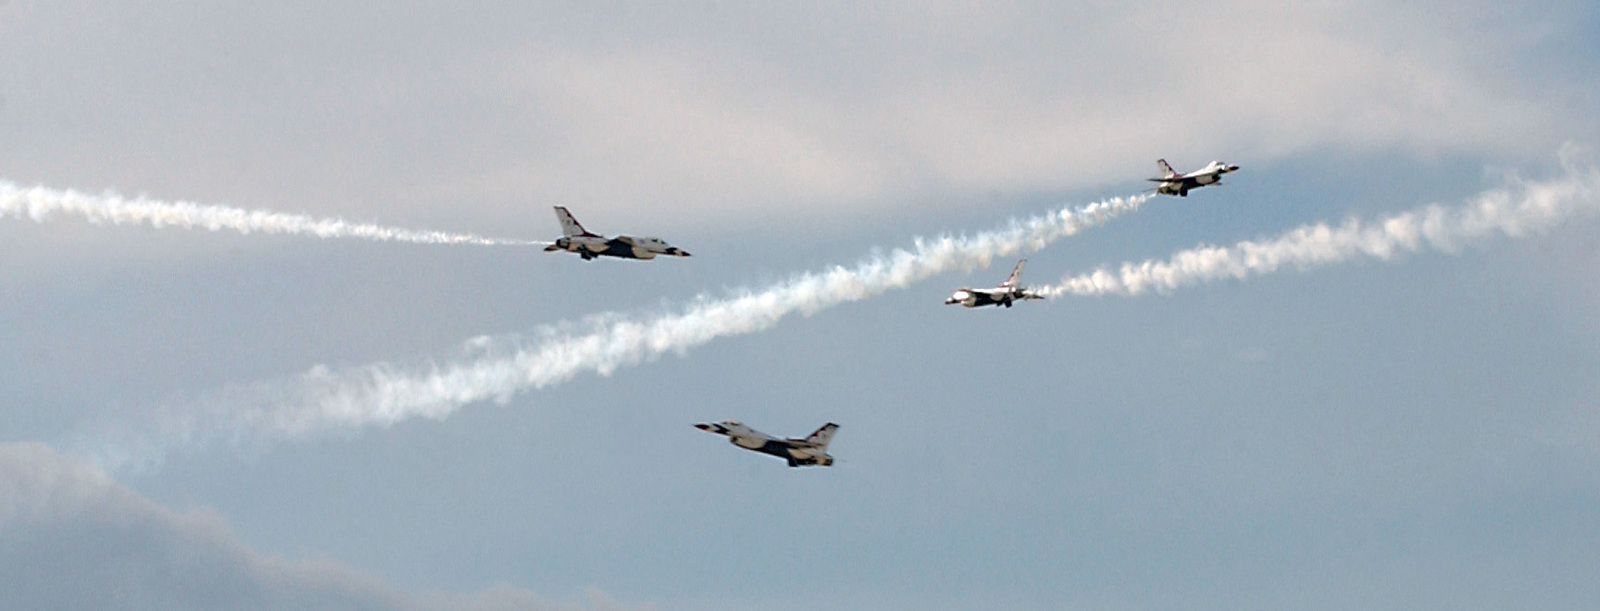 The United States Air Force Air Demonstration Squadron (USAFADS), The Thunderbirds, perform aerobatics in the skies in their F-16 Fighting Falcon fighter aircraft at Ellsworth Air Force Base (AFB), South Dakota (SD), for General (GEN) Hal Hornburg, not shown, the Air Combat Command (ACC) Commander